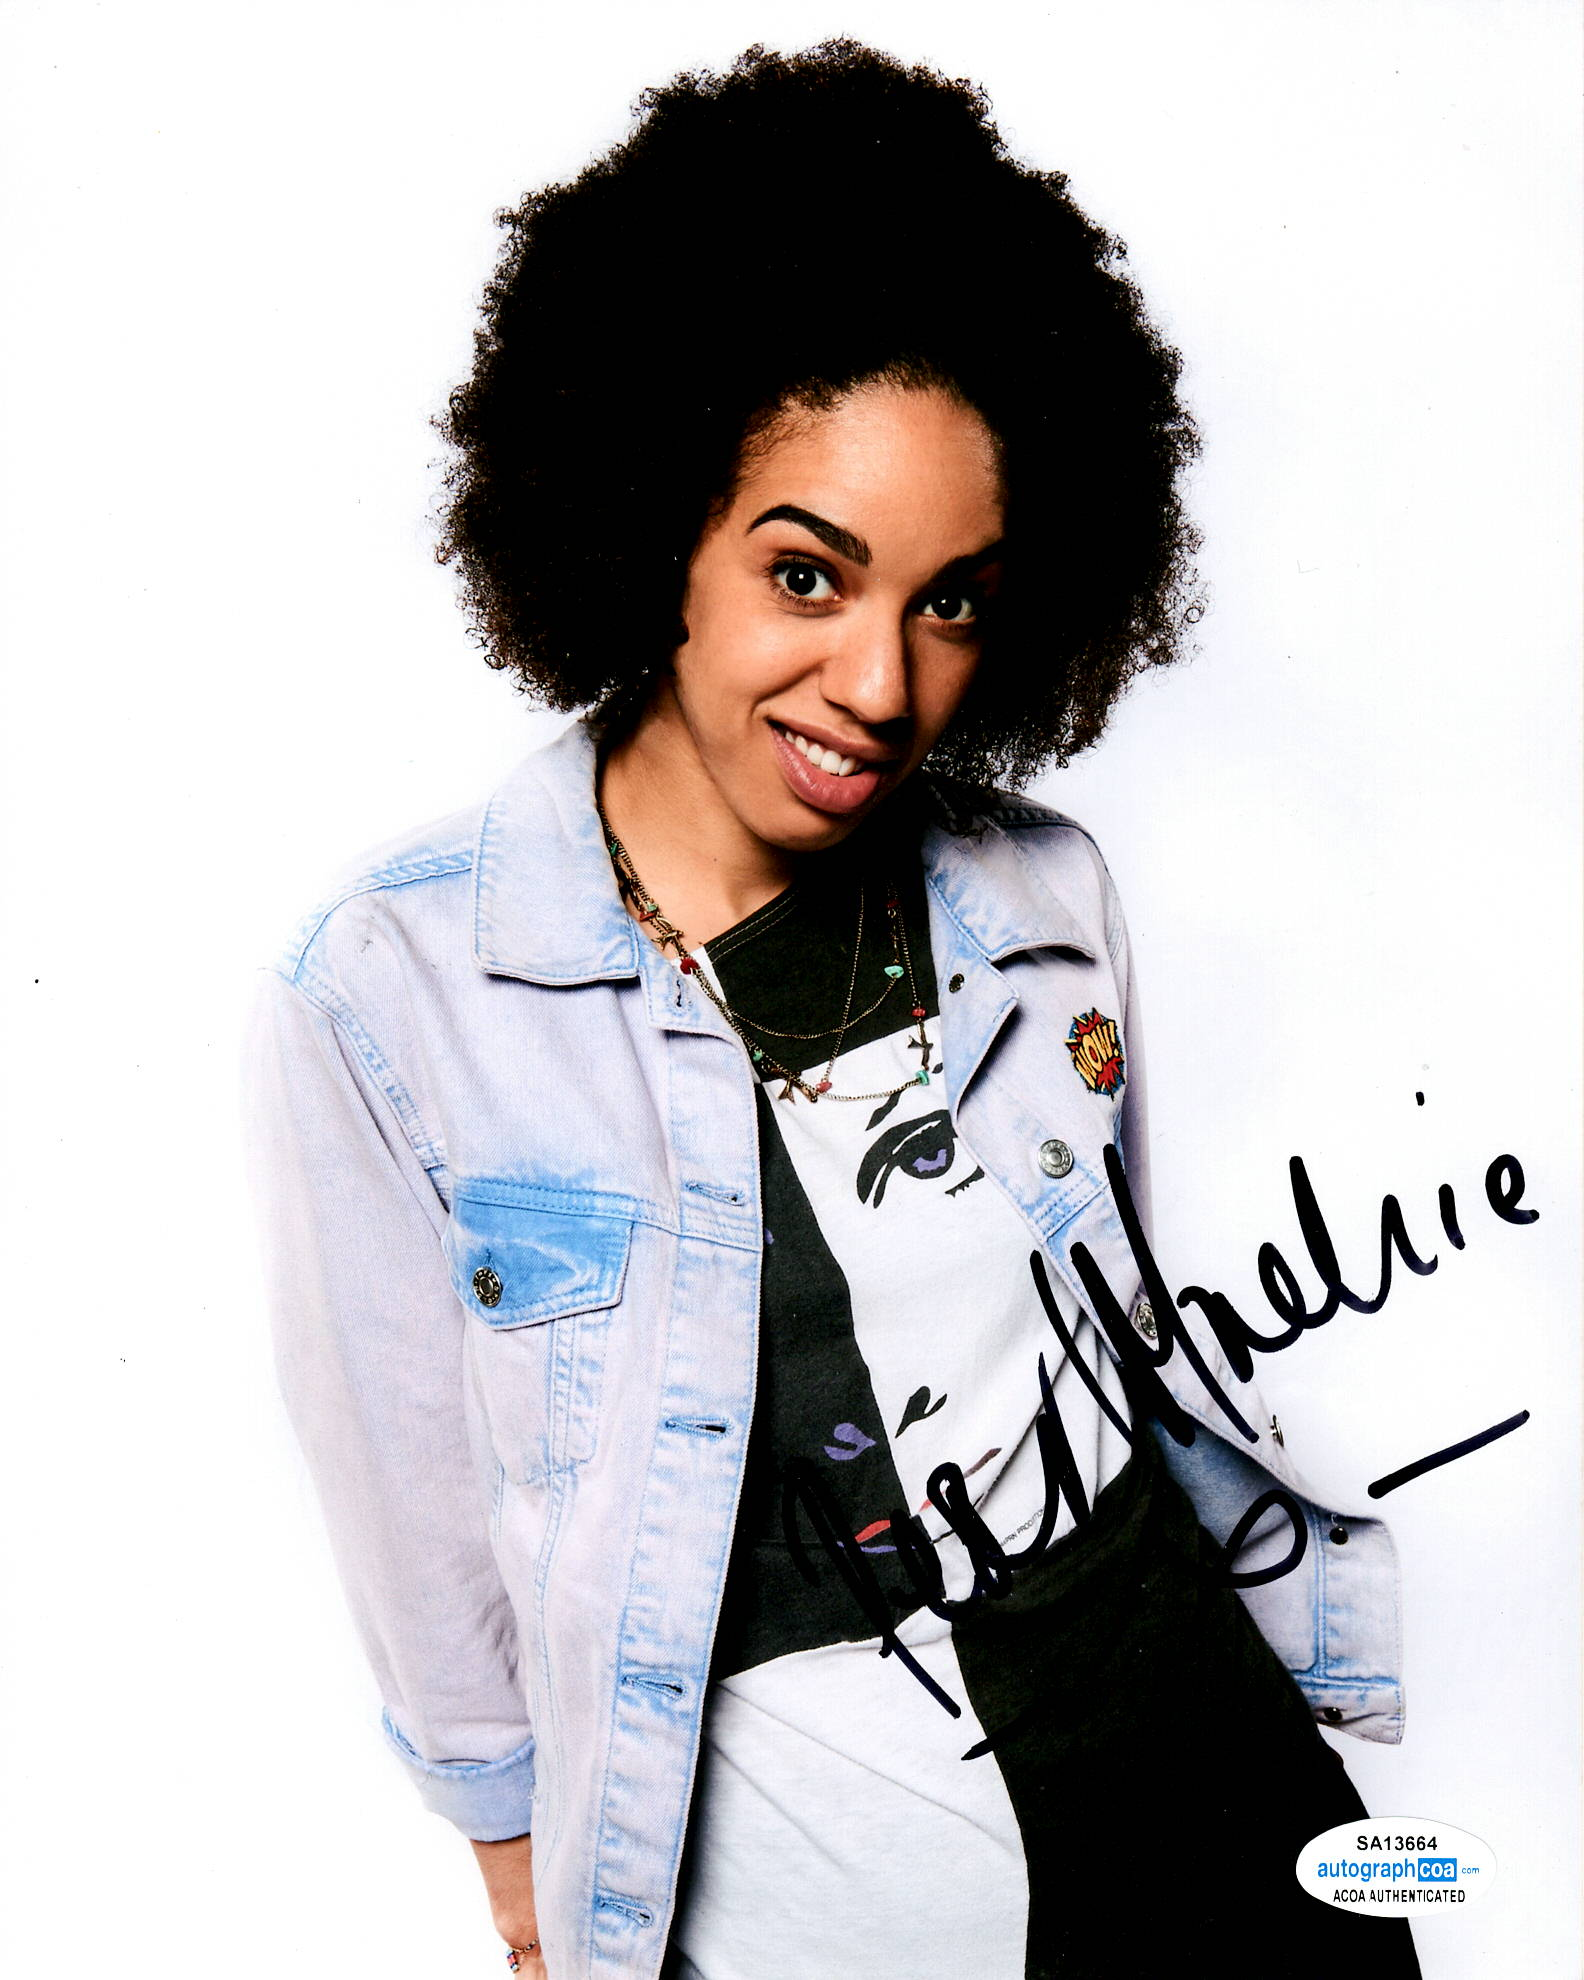 Pearl Mackie Doctor Who Signed Autograph 8x10 Photo #4 - Outlaw Hobbies Authentic Autographs